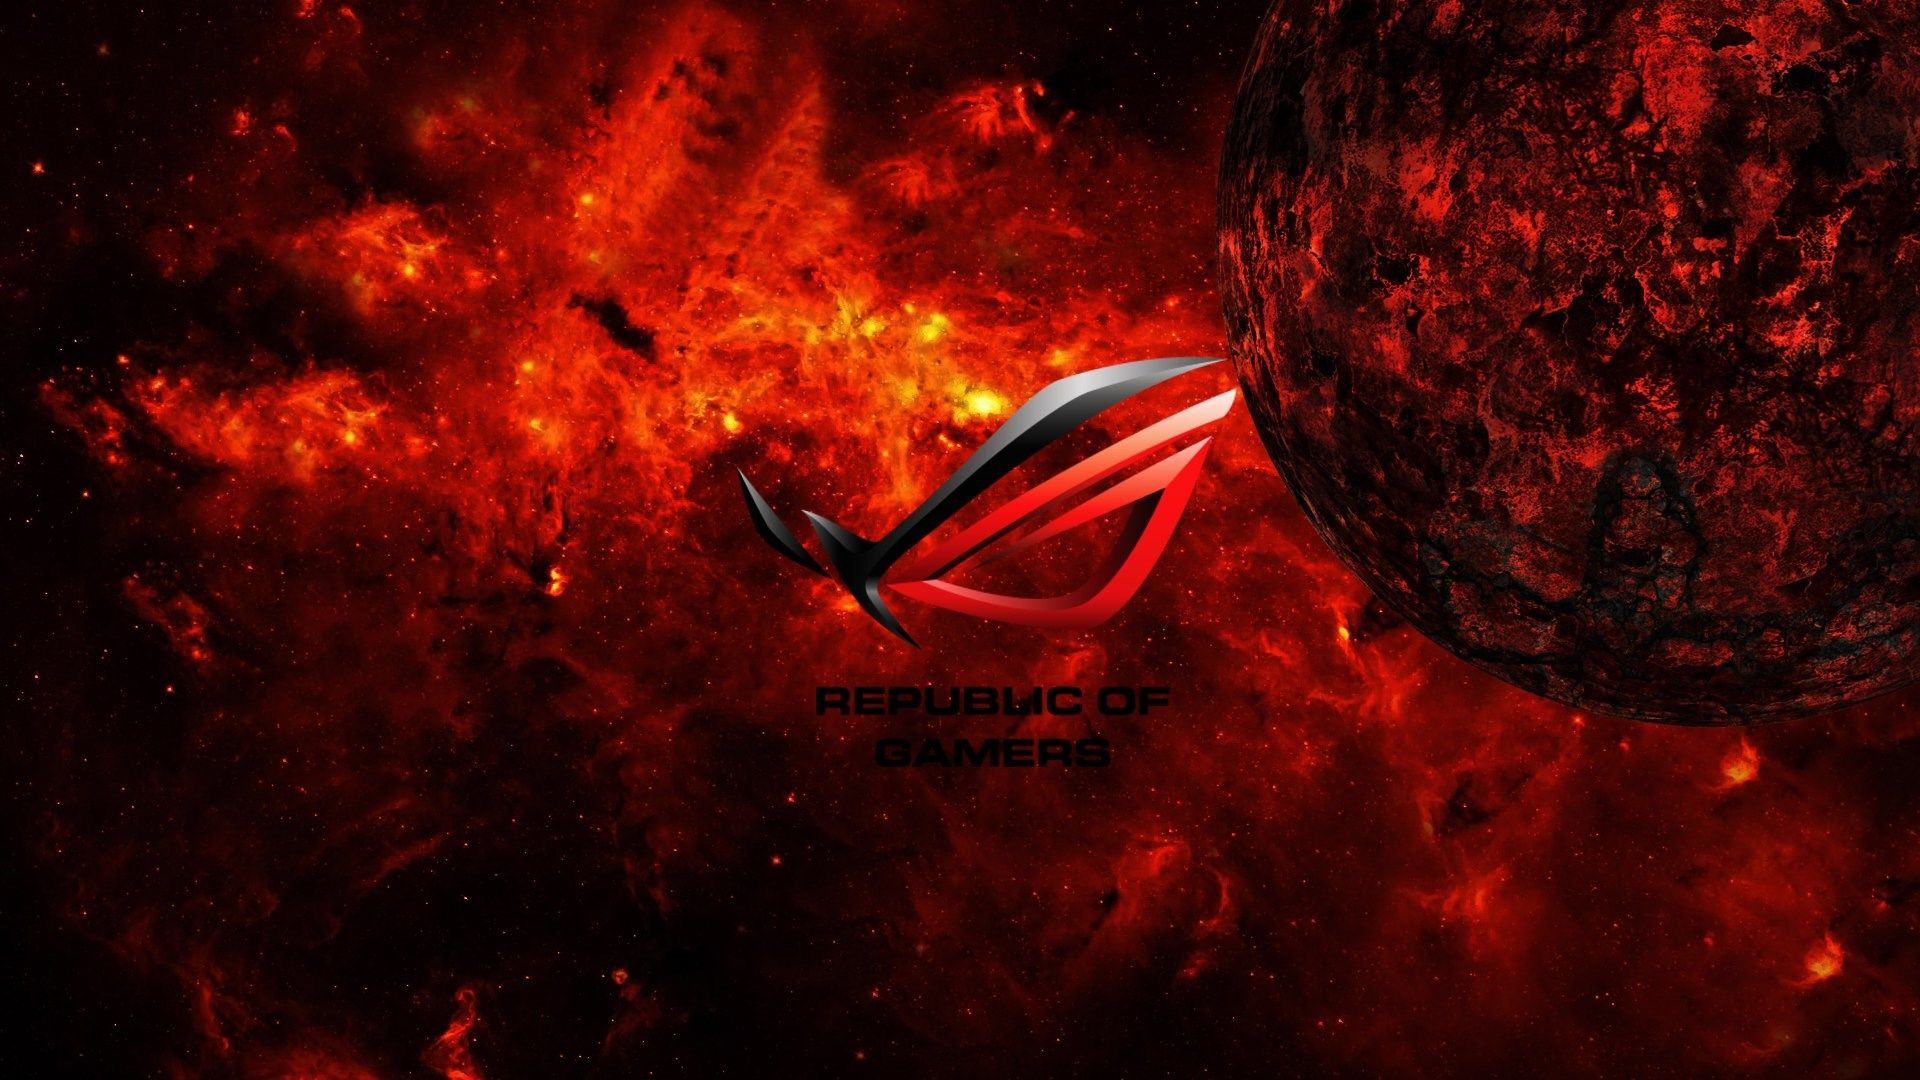 1420615 Asus Category Free Screensaver Wallpapers For